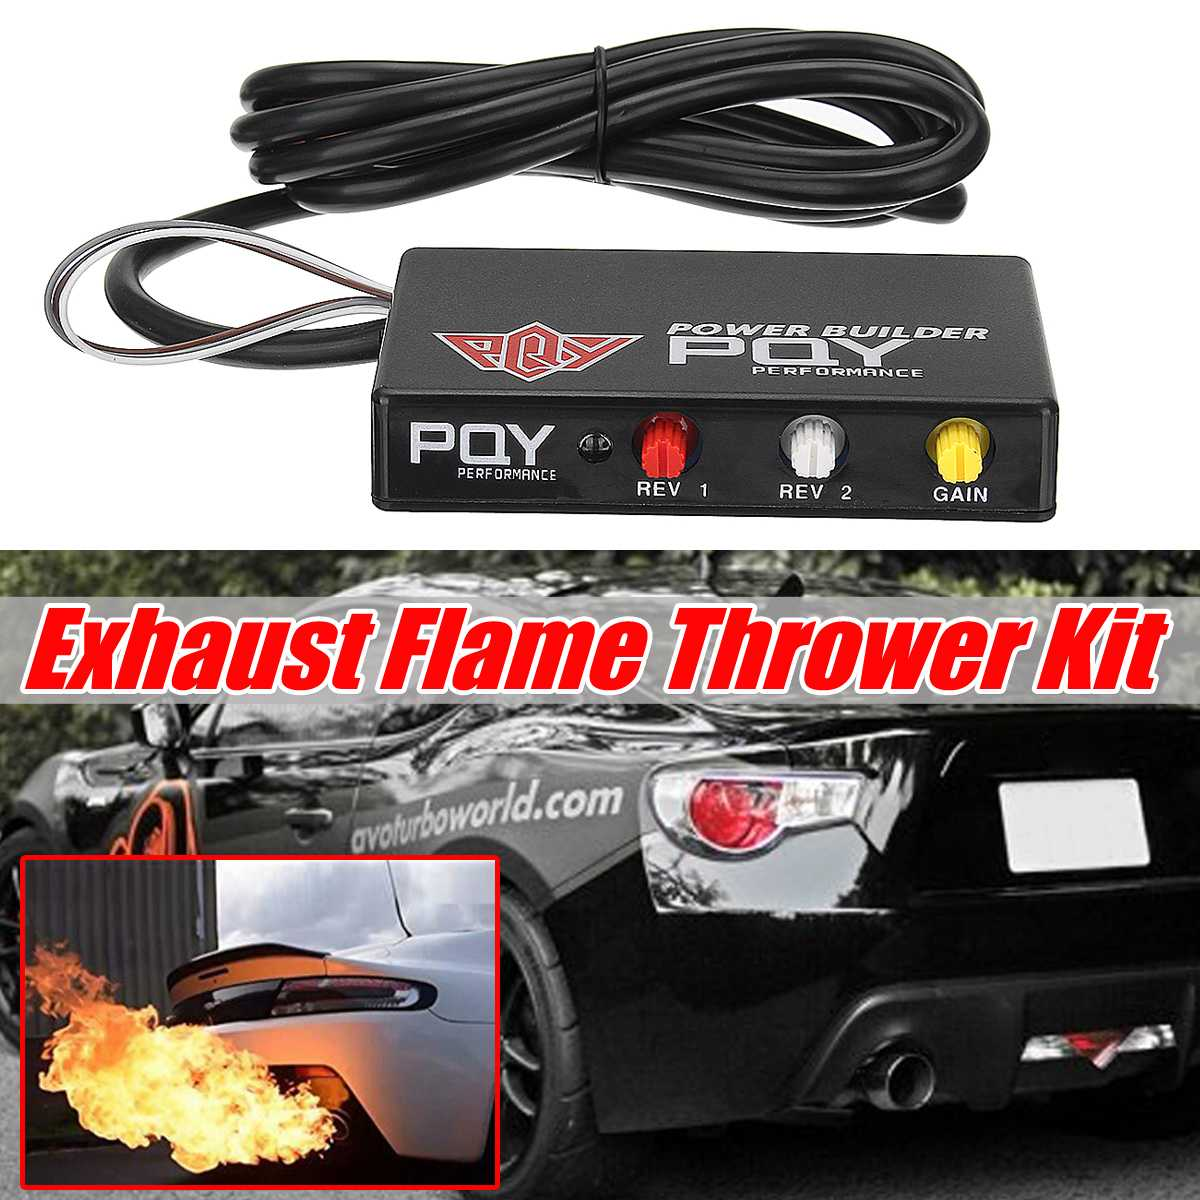 Universal Engines Performance Limiter Power Builder Exhaust Flame Thrower Kit Flame Thrower For Exhaust For Nissan For Subaru